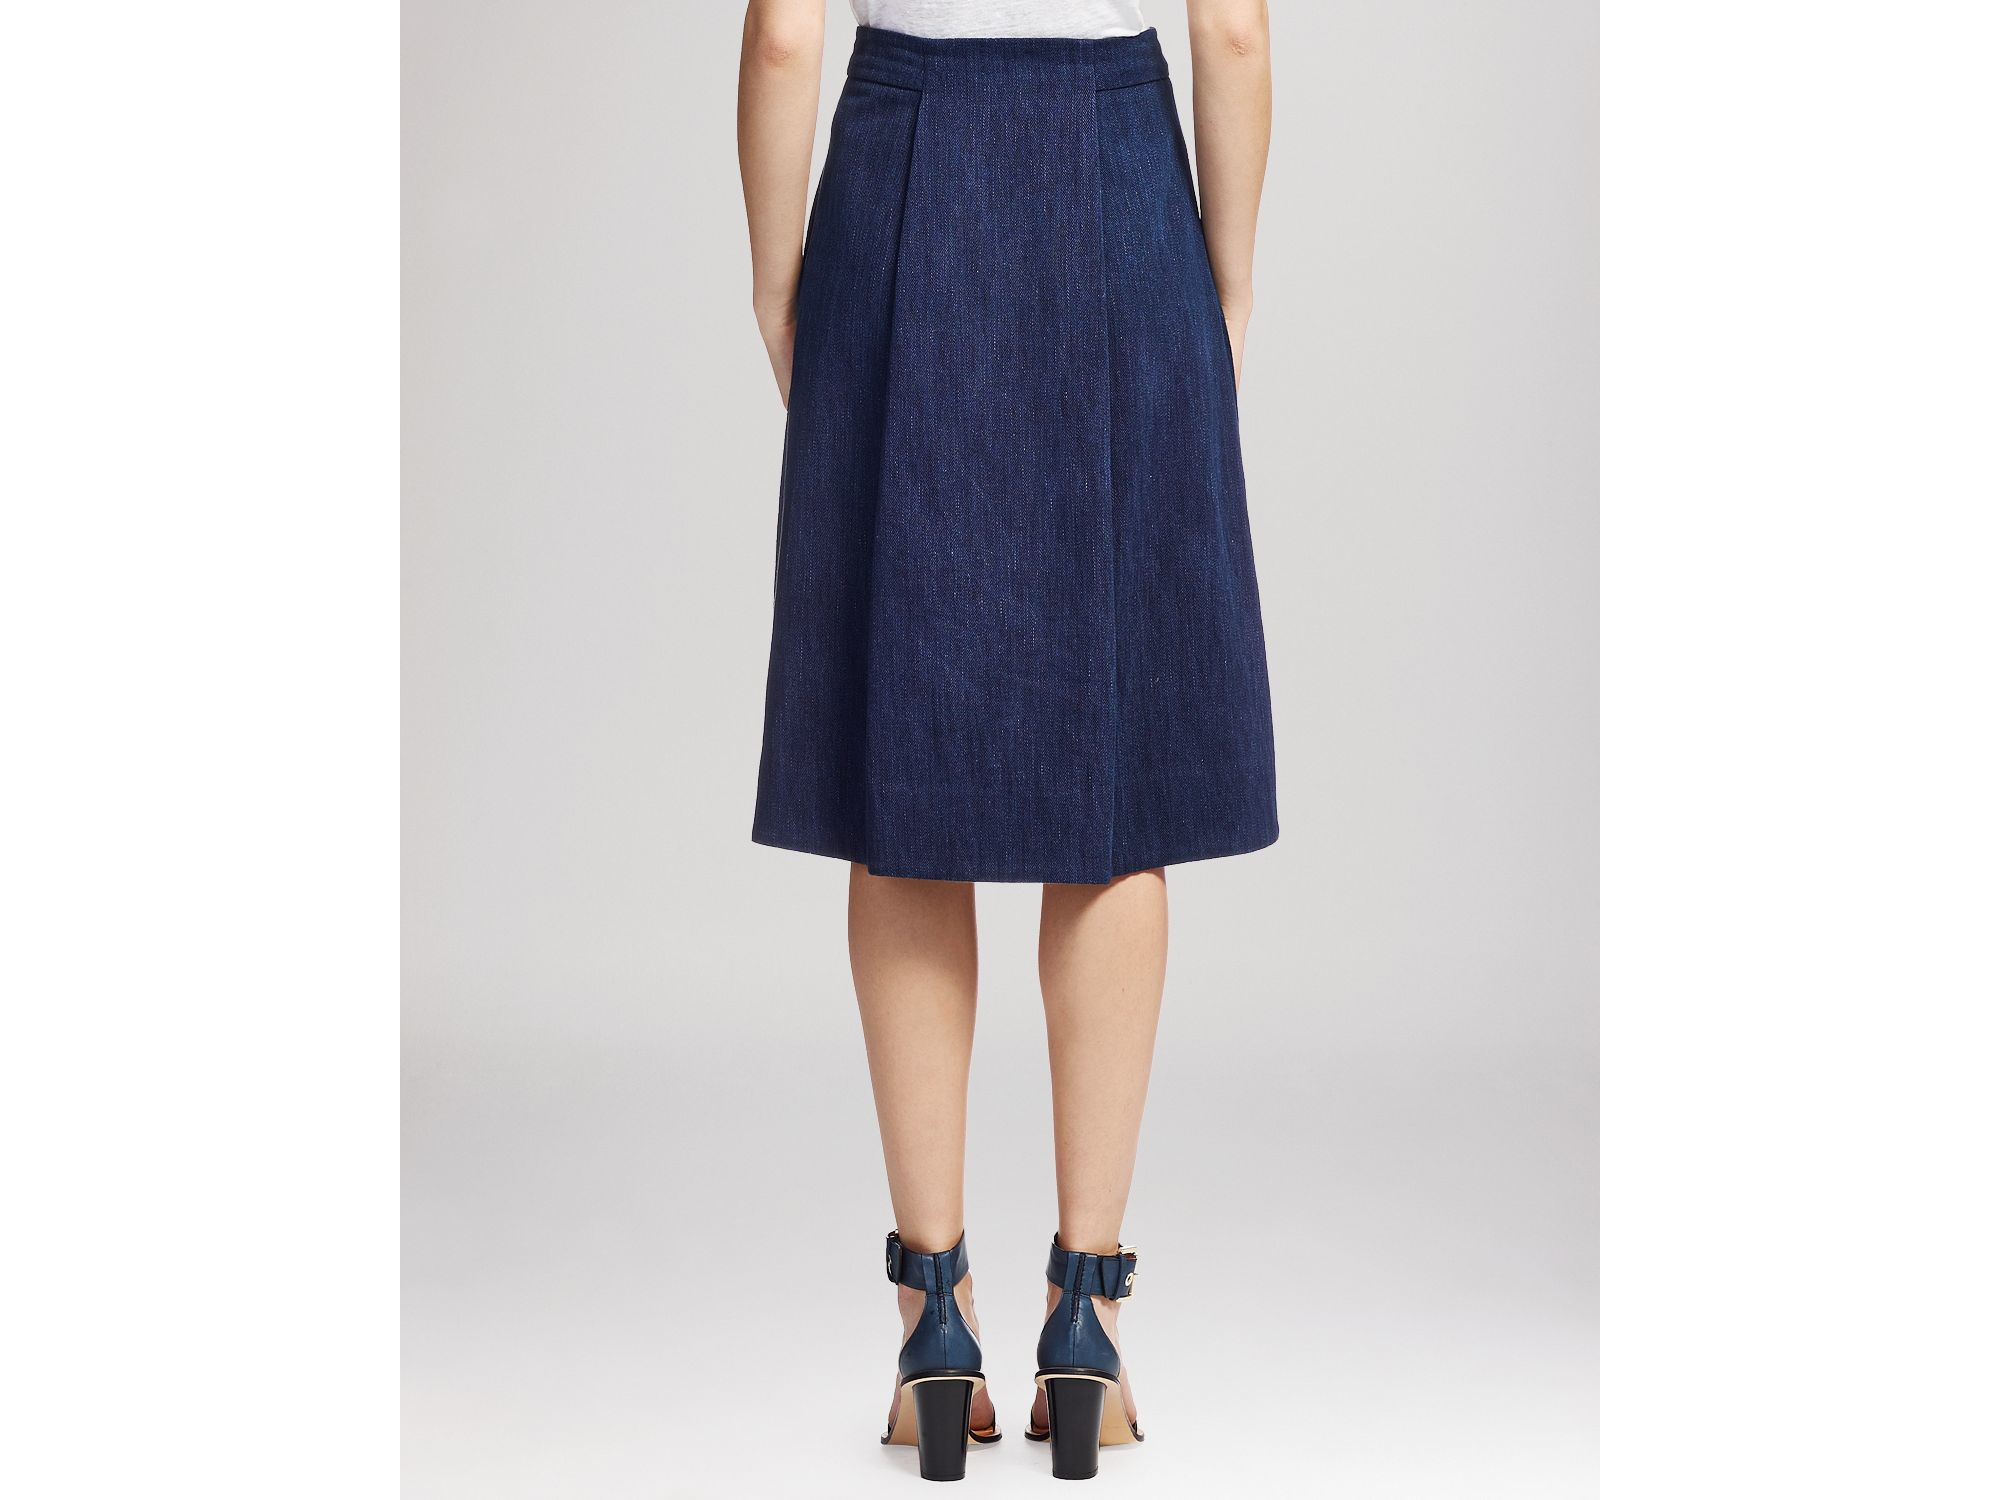 Whistles Skirt - Exposed Zip Front Midi in Blue | Lyst